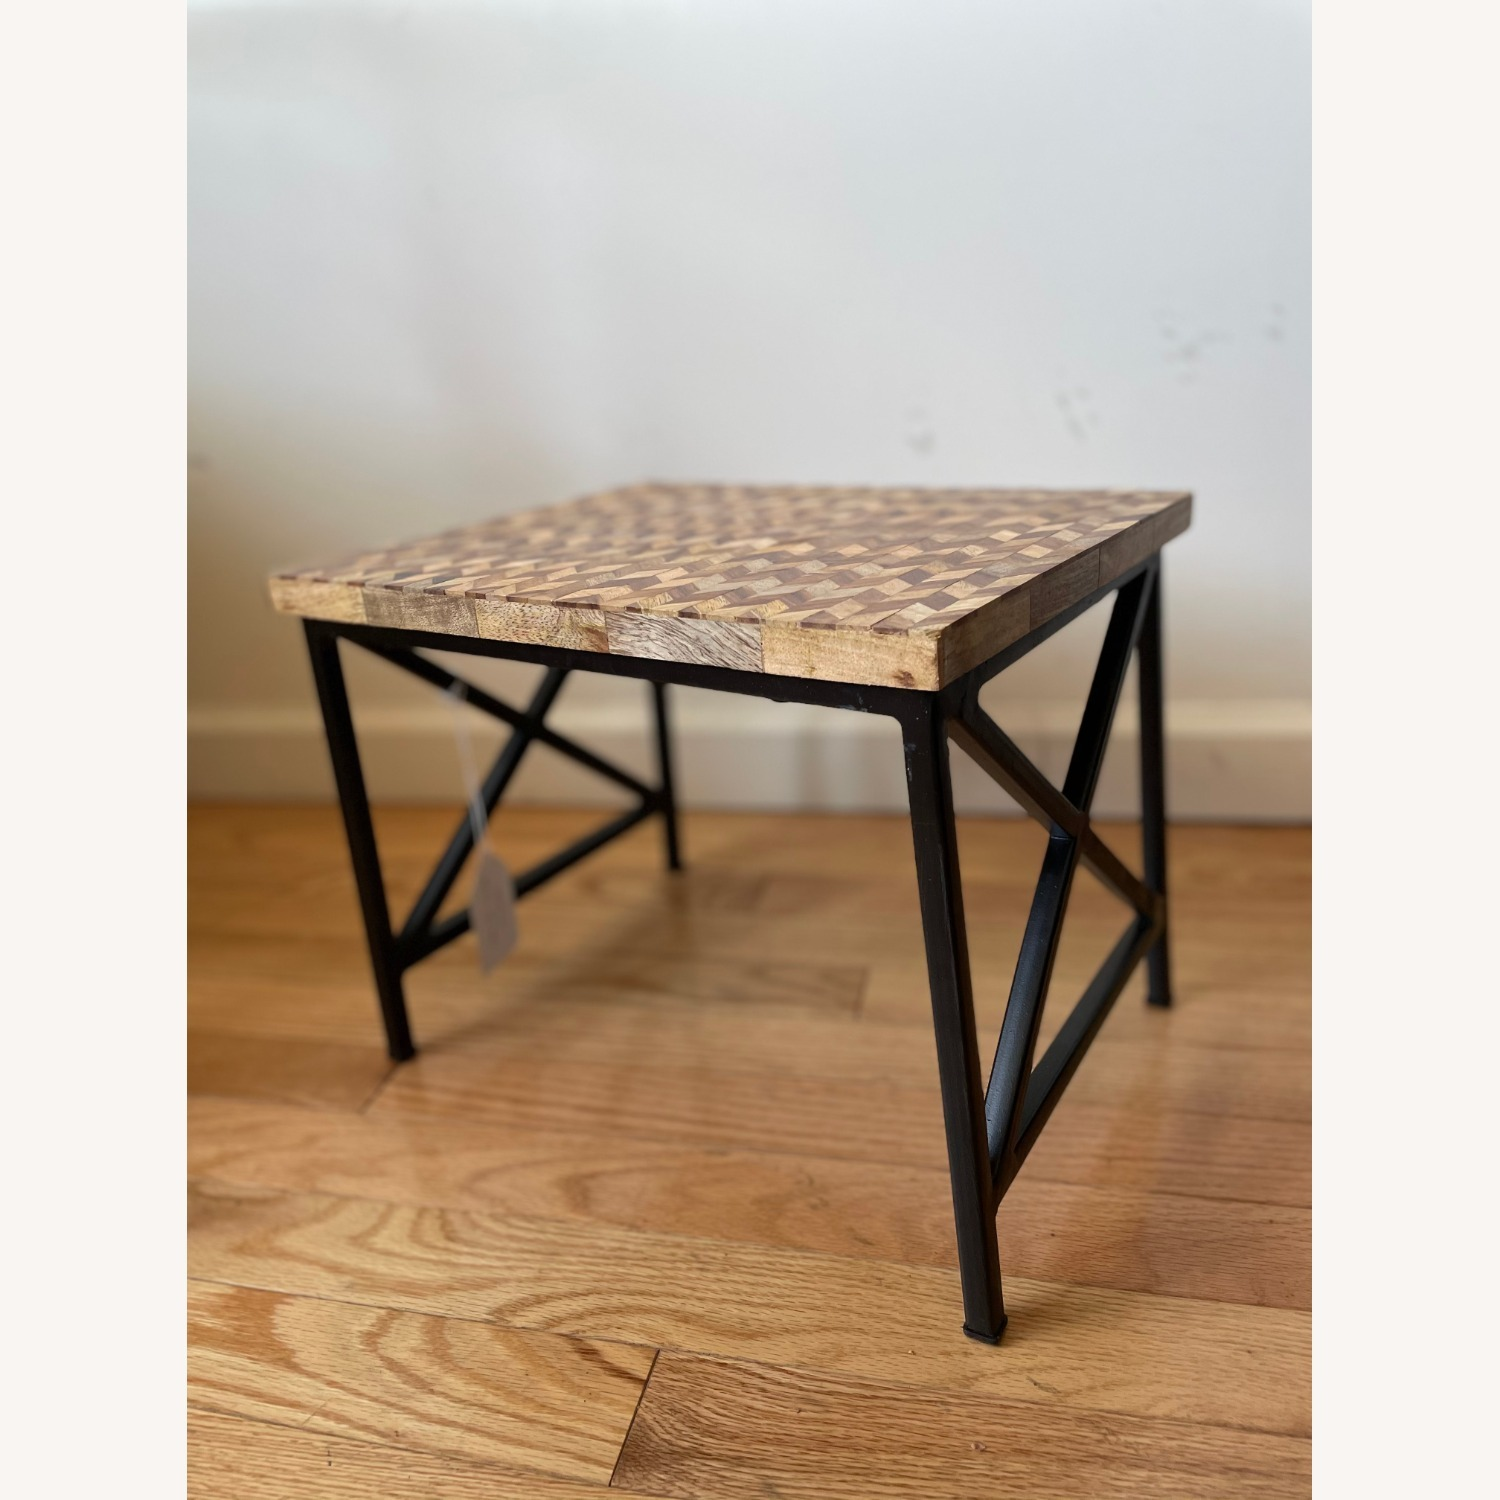 Pair of Industrial Wooden End Tables - image-4